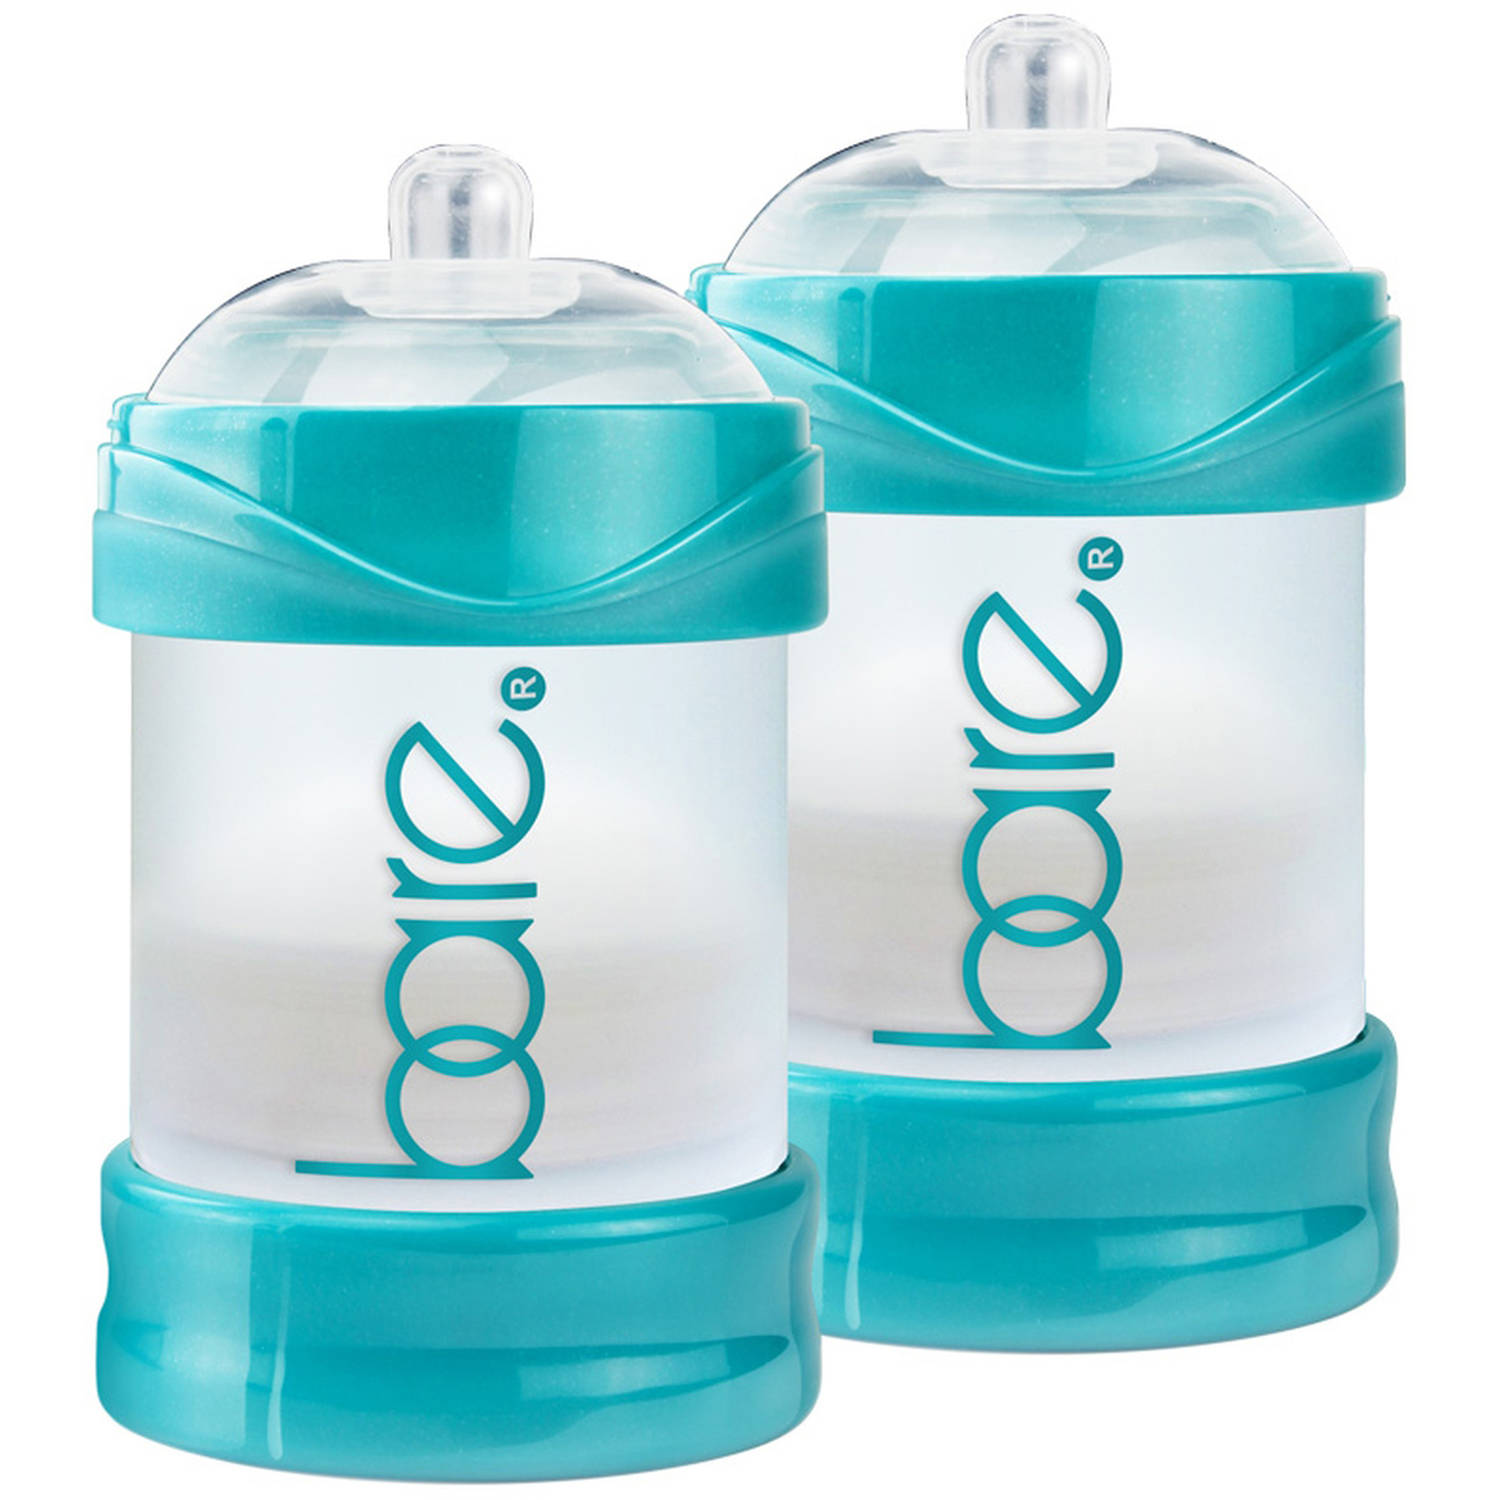 BARE Air-free 4oz Twin Pack with Perfe-latch Nipples, Breast-like & Air-free by BARE AIR-FREE FEEDING SYSTEM